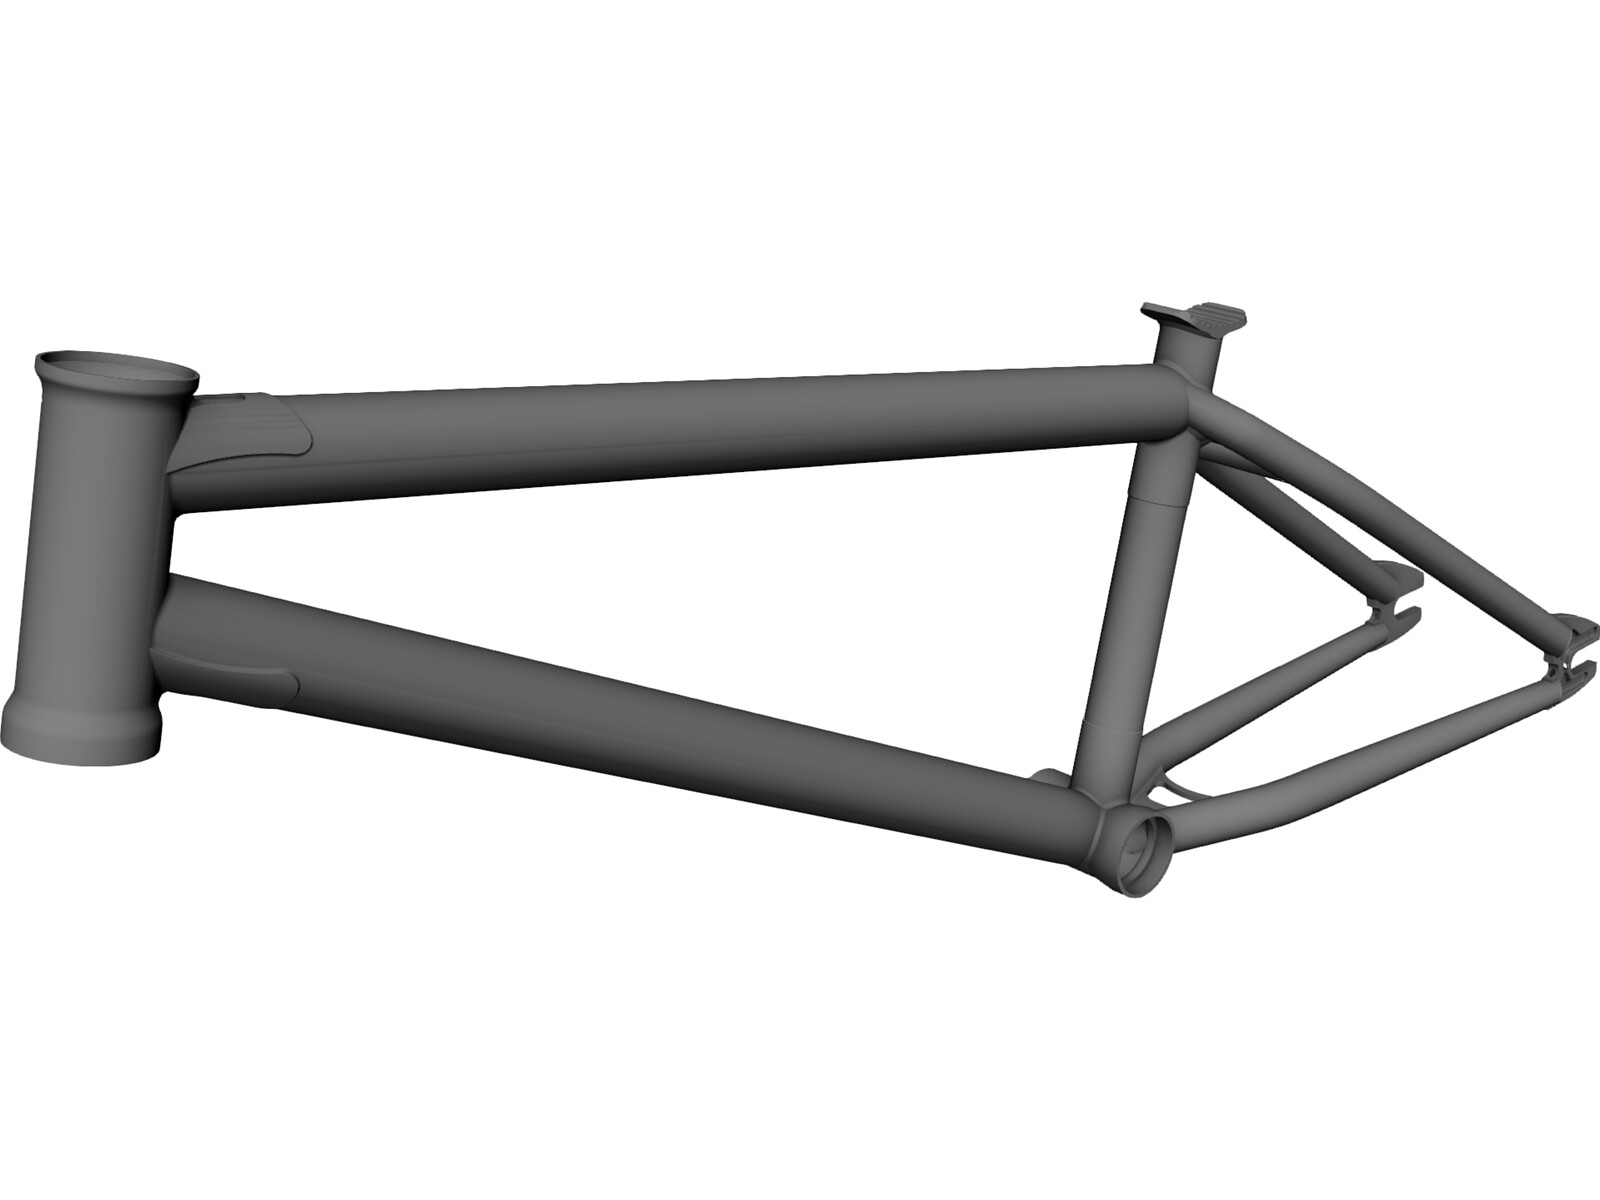 Bike Frame 3D CAD Model - 3D CAD Browser